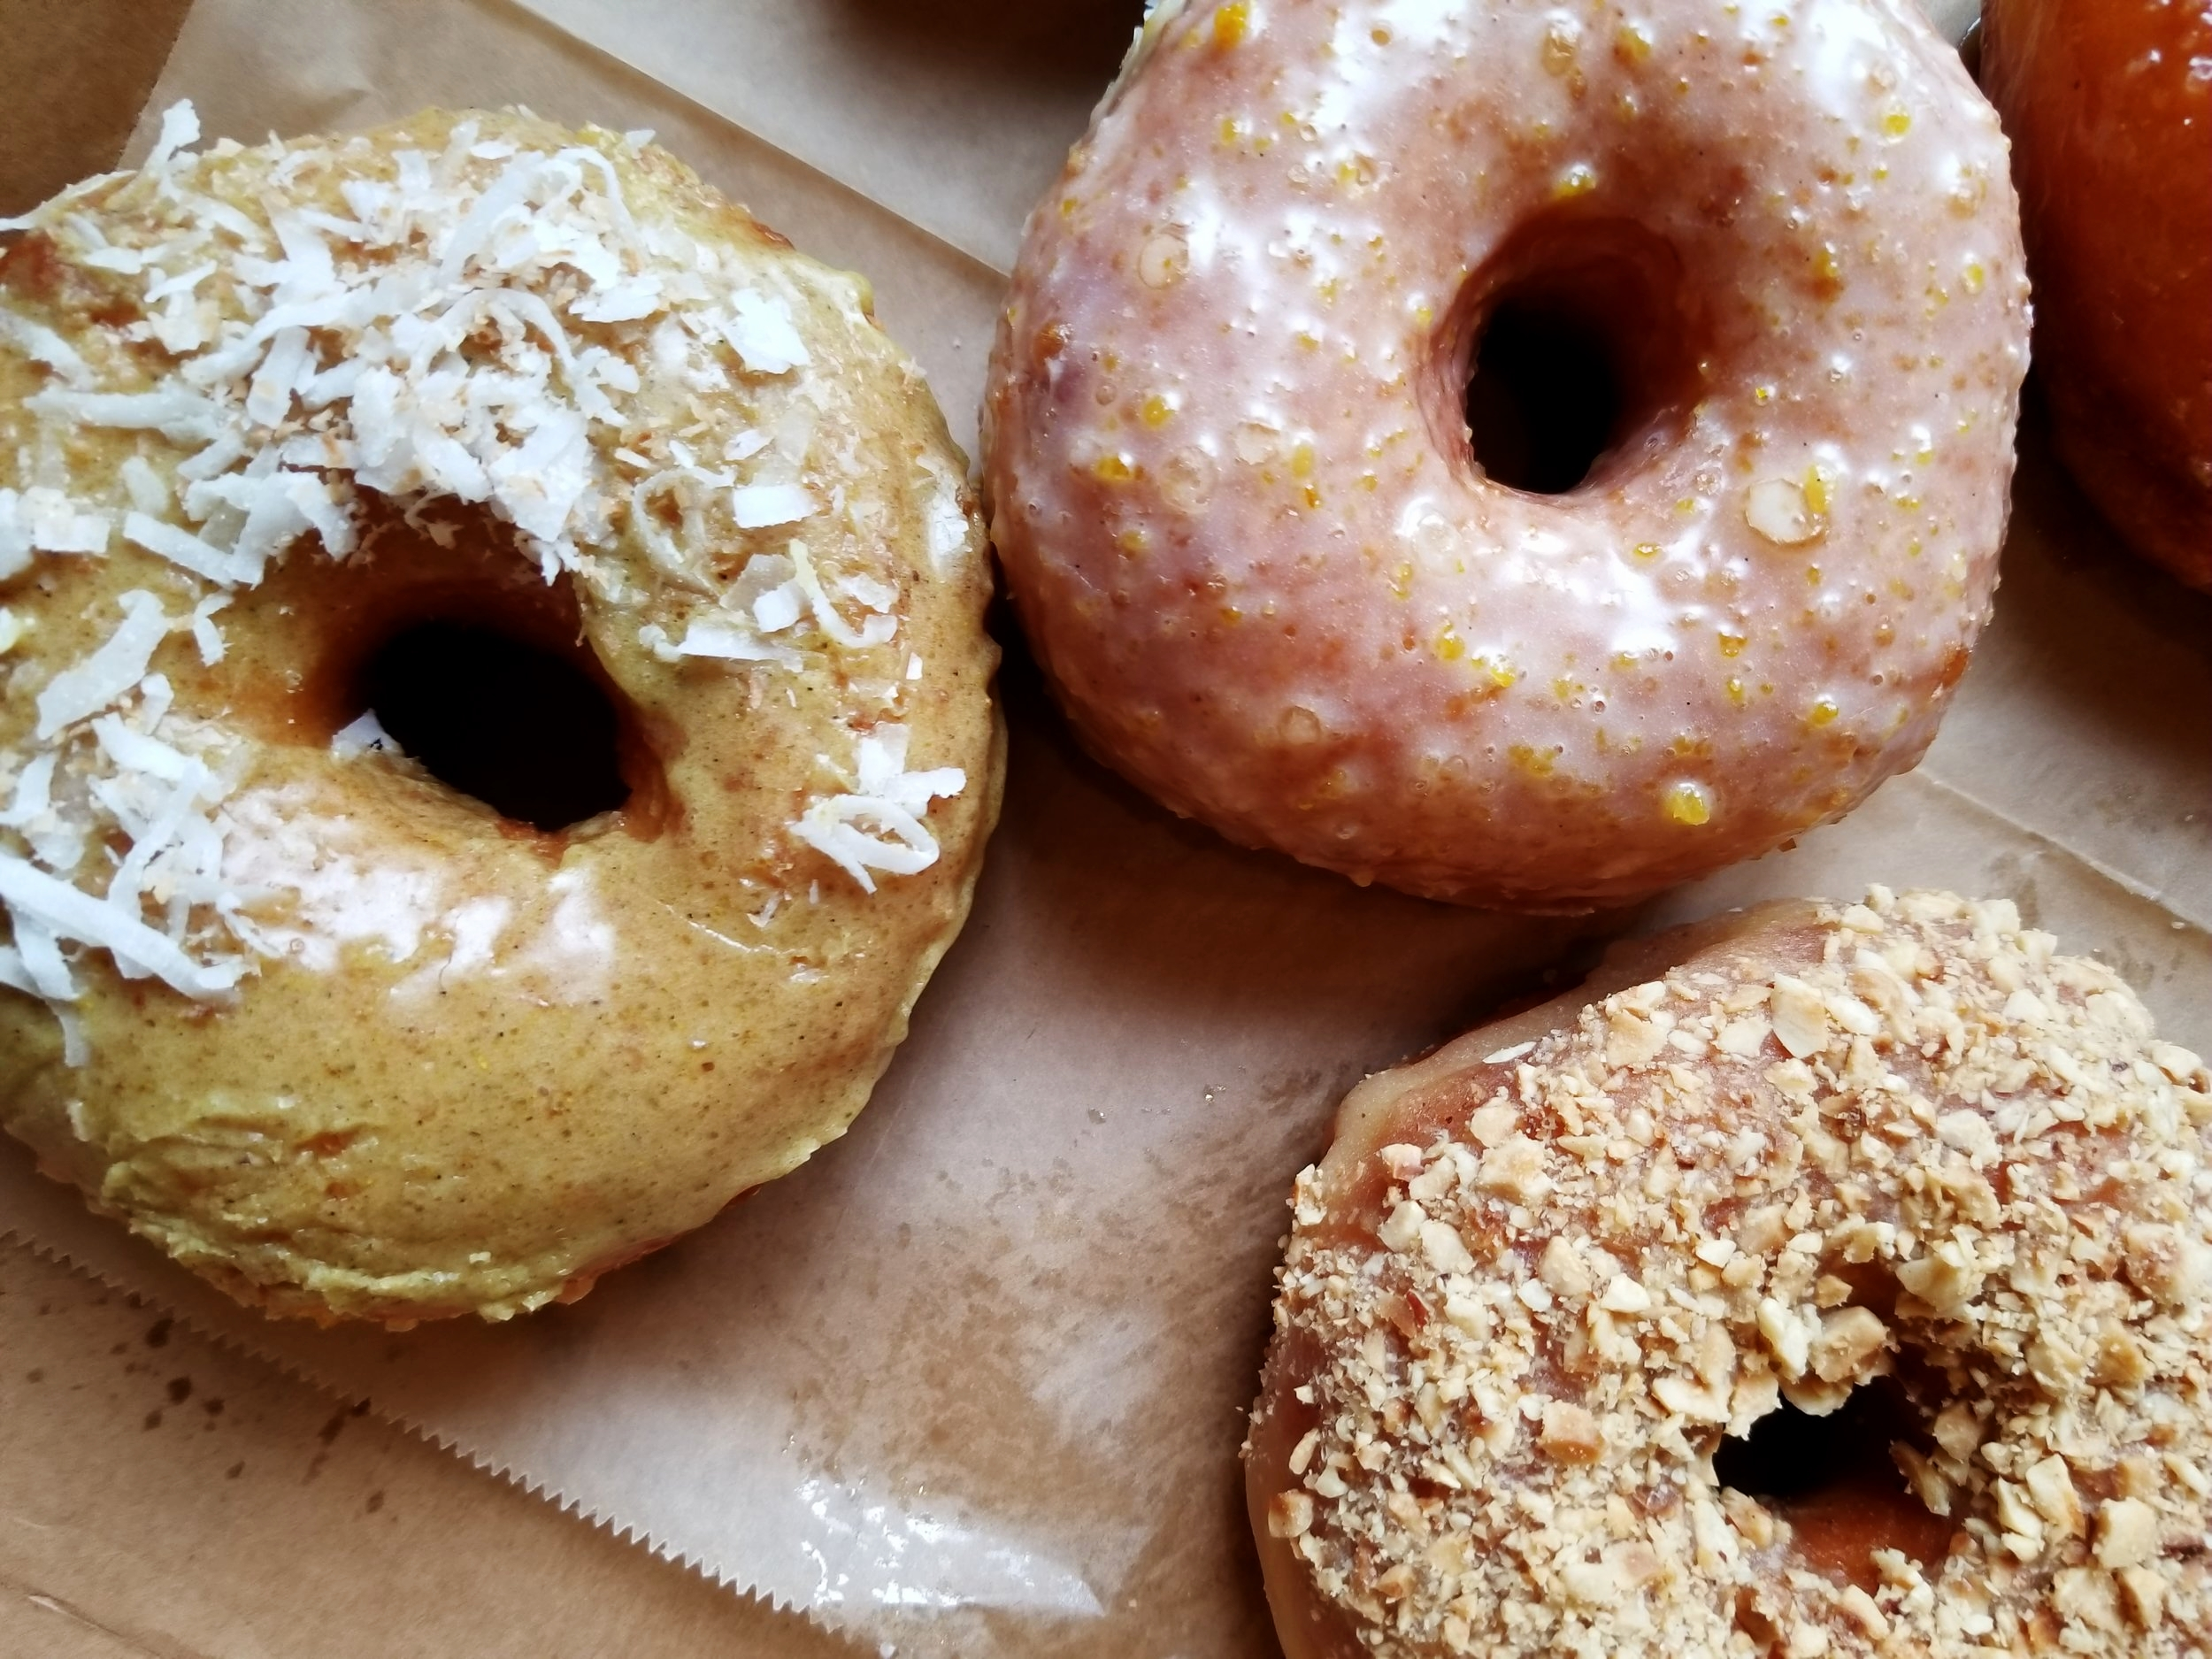 Coconut curry, citrus glazed, and hazelnut covered doughnut were just a few of the doughnuts we sampled.